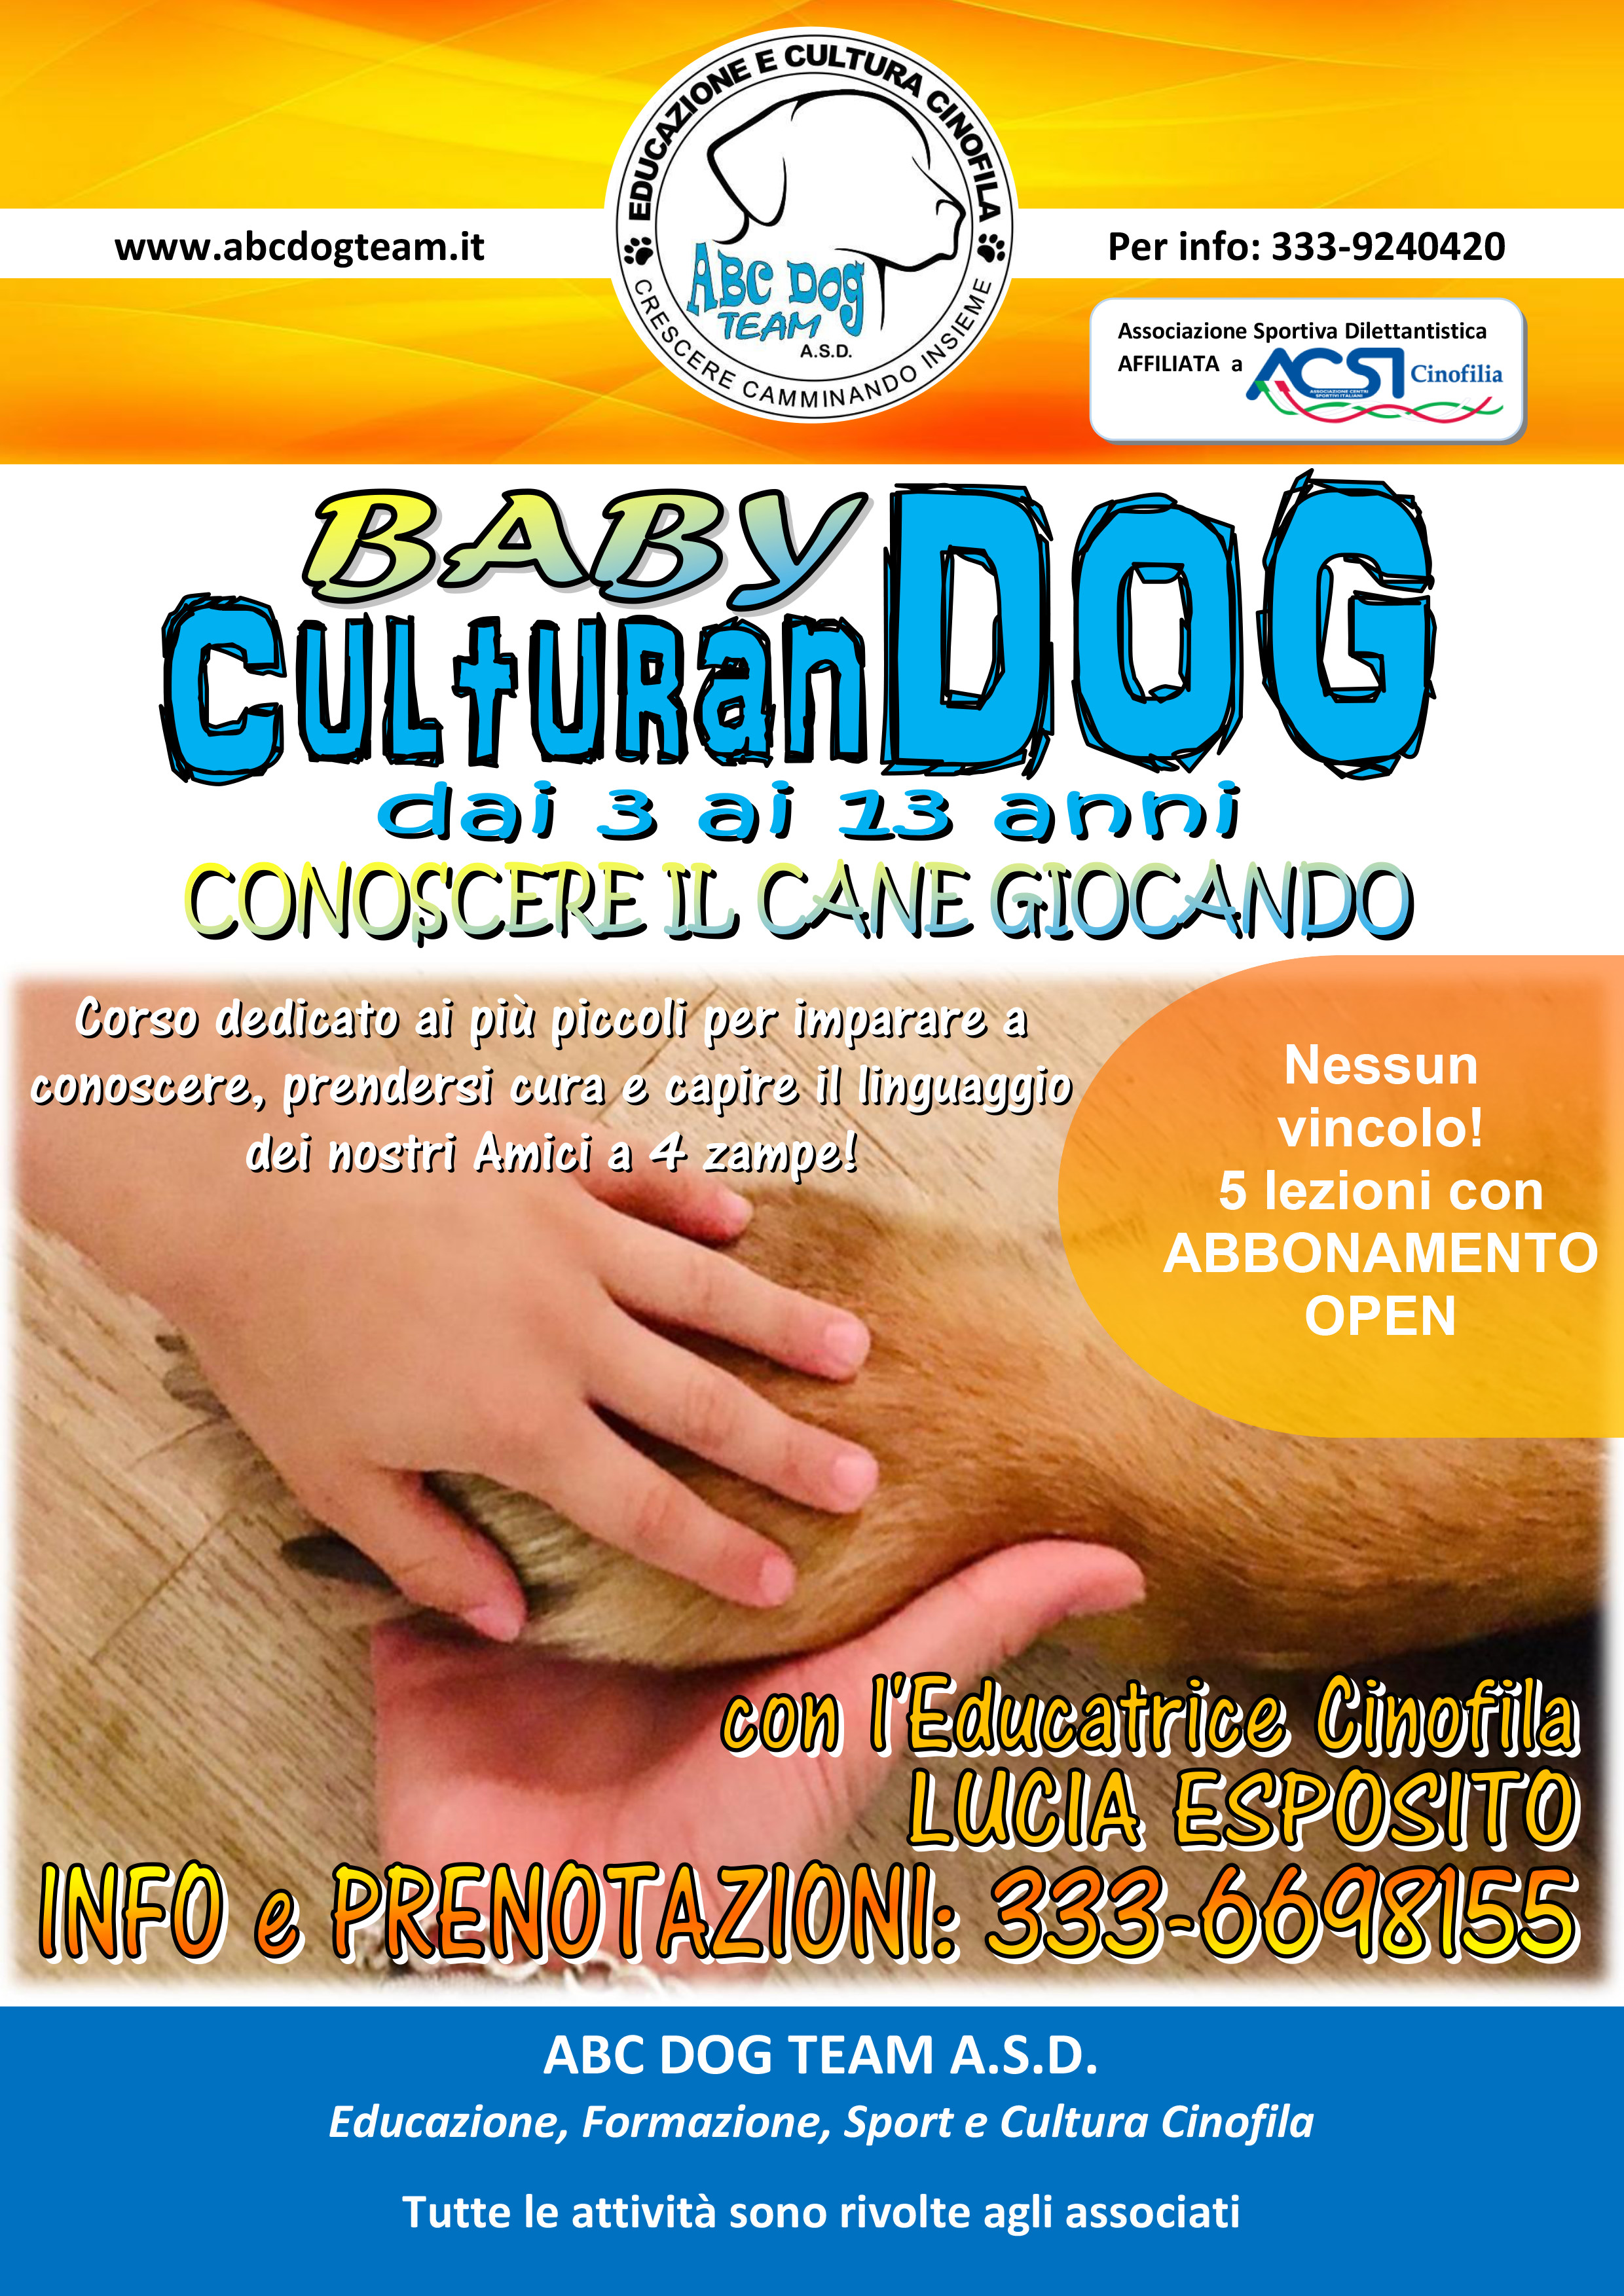 Abc Dog Team Baby CulturanDOG 2020